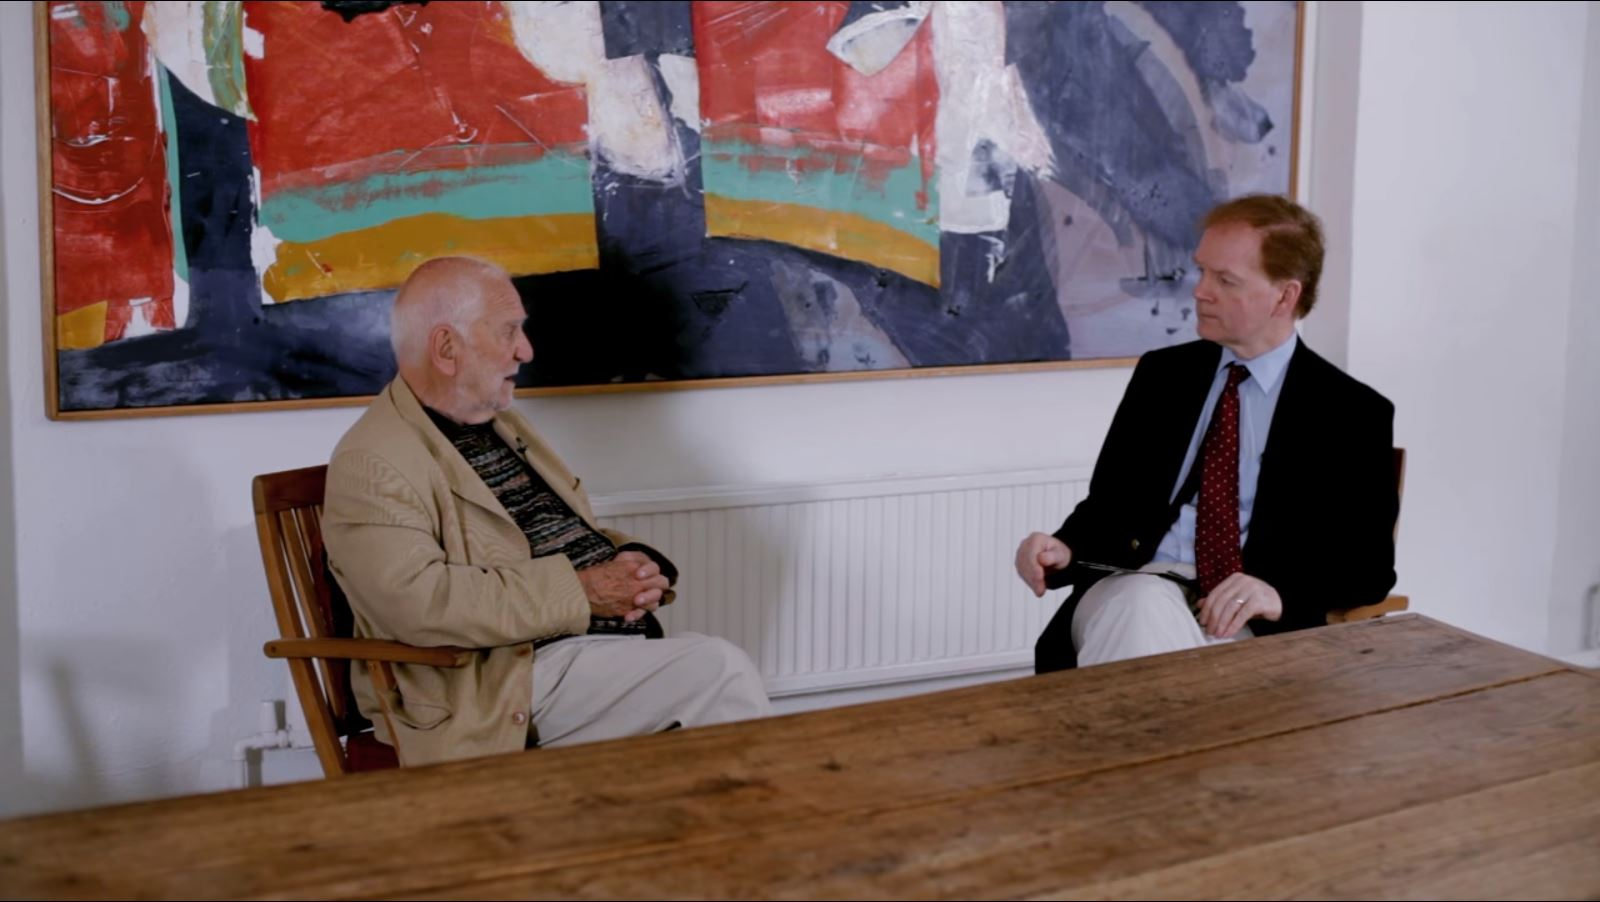 The artist Sir Anthony Caro (1924–2013) converses with Julius Bryant, Keeper of Word andImage, Victoria and Albert Museum, London